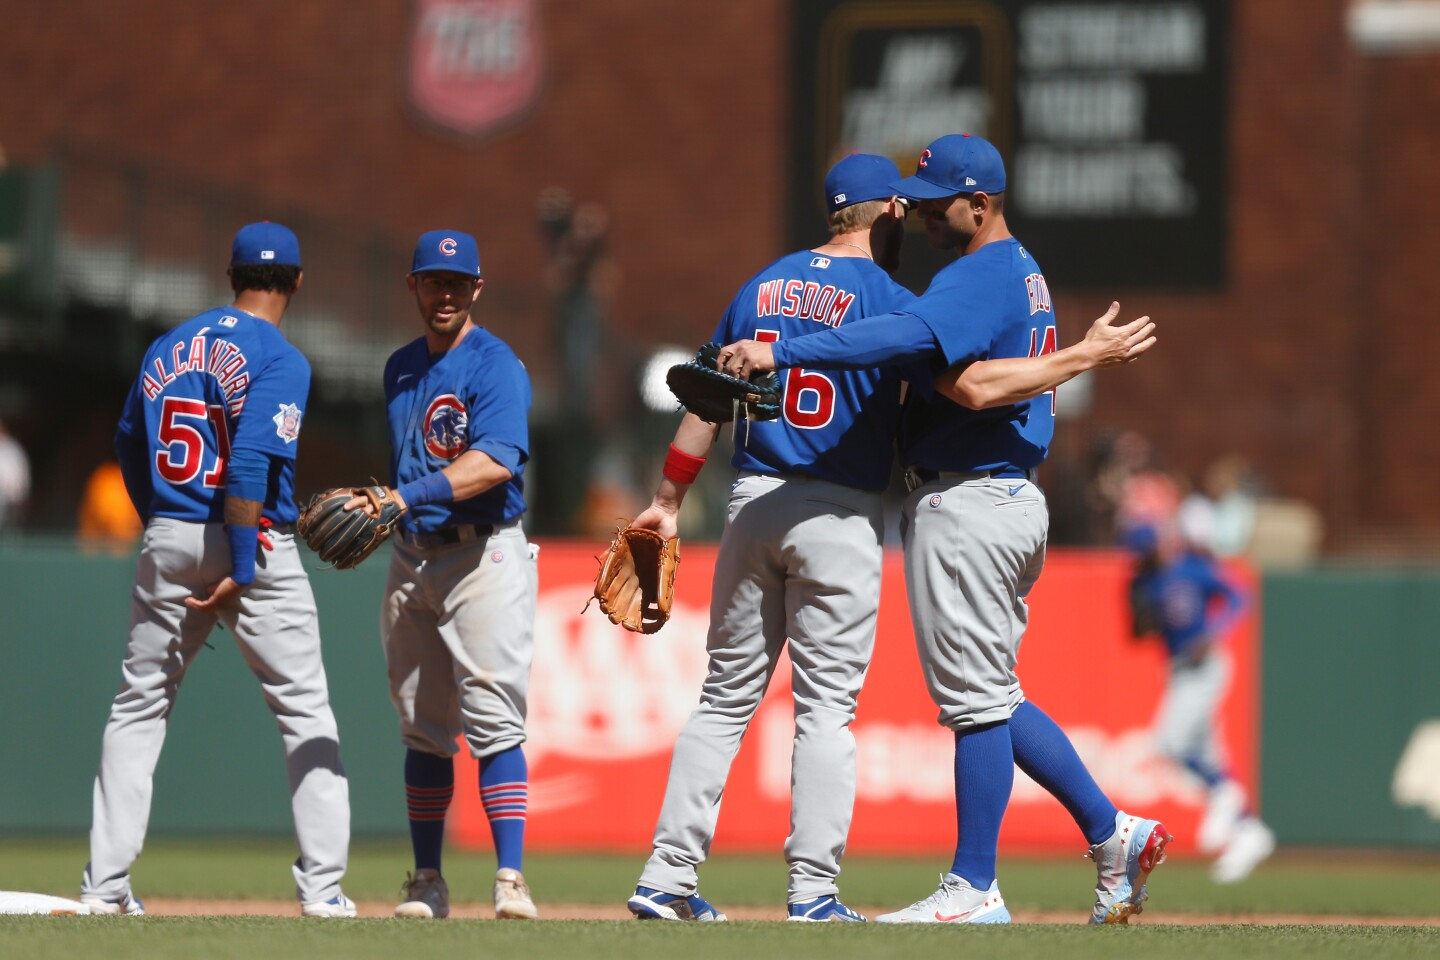 SAN FRANCISCO, CALIFORNIA - JUNE 06: Patrick Wisdom #16 and Anthony Rizzo #44 of the Chicago Cubs celebrate after their win against the San Francisco Giants at Oracle Park on June 06, 2021 in San Francisco, California. (Photo by Lachlan Cunningham/Getty Images)